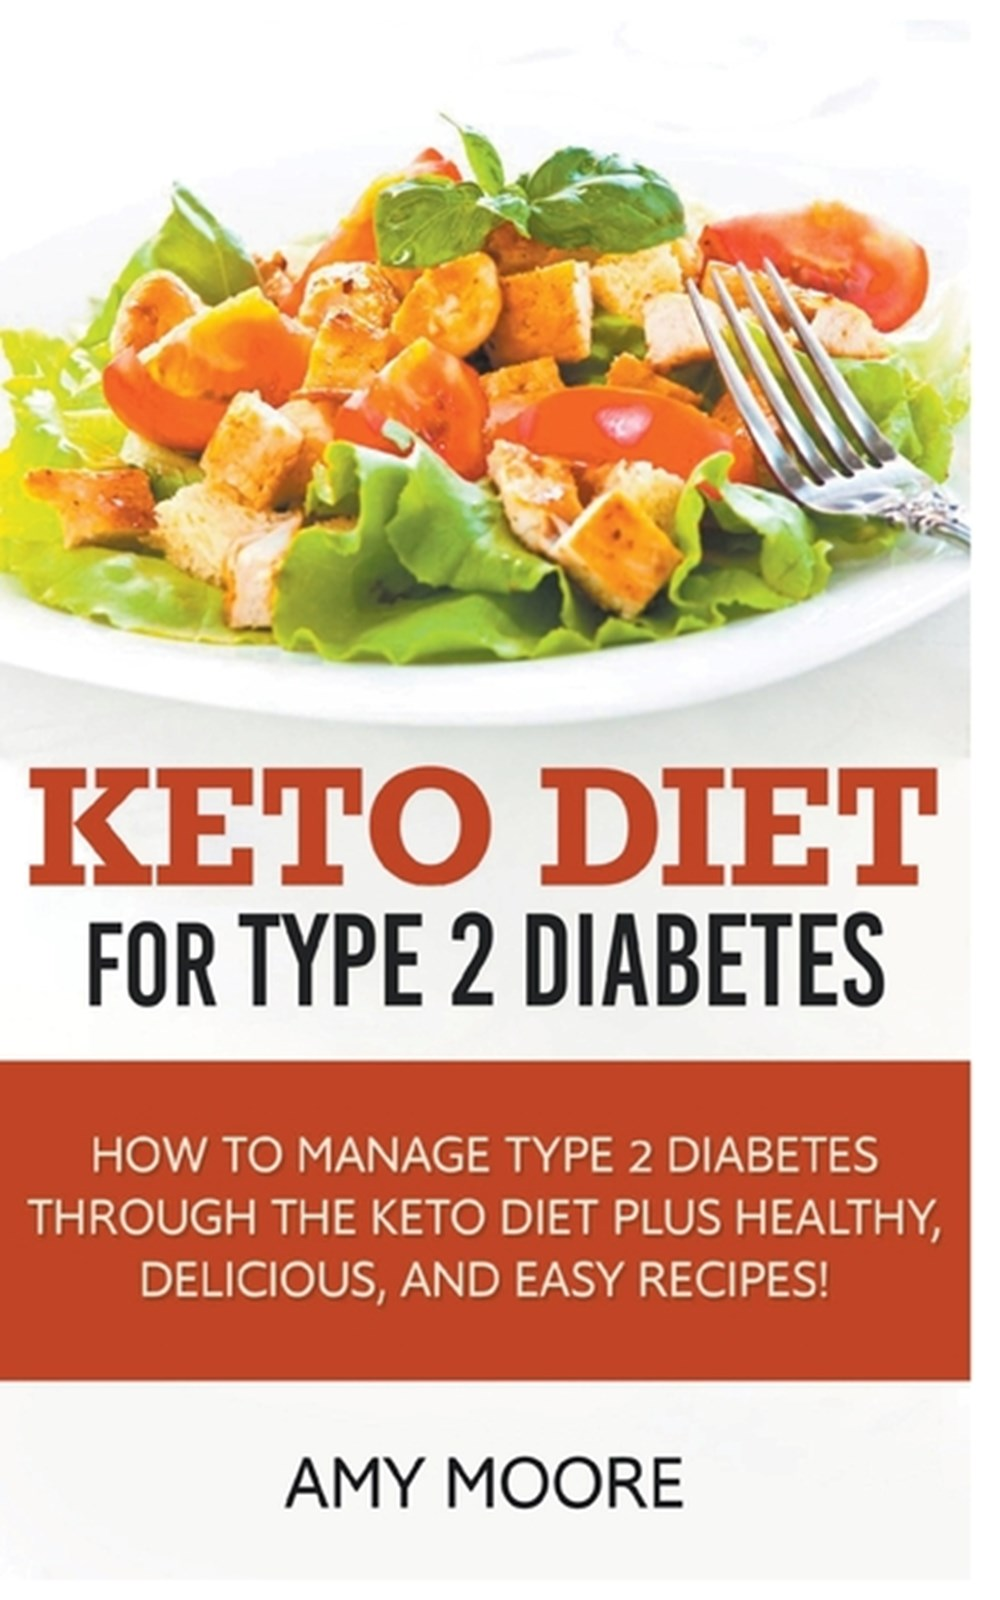 Keto Diet for Type 2 Diabetes, How to Manage Type 2 Diabetes Through the Keto Diet Plus Healthy, Del